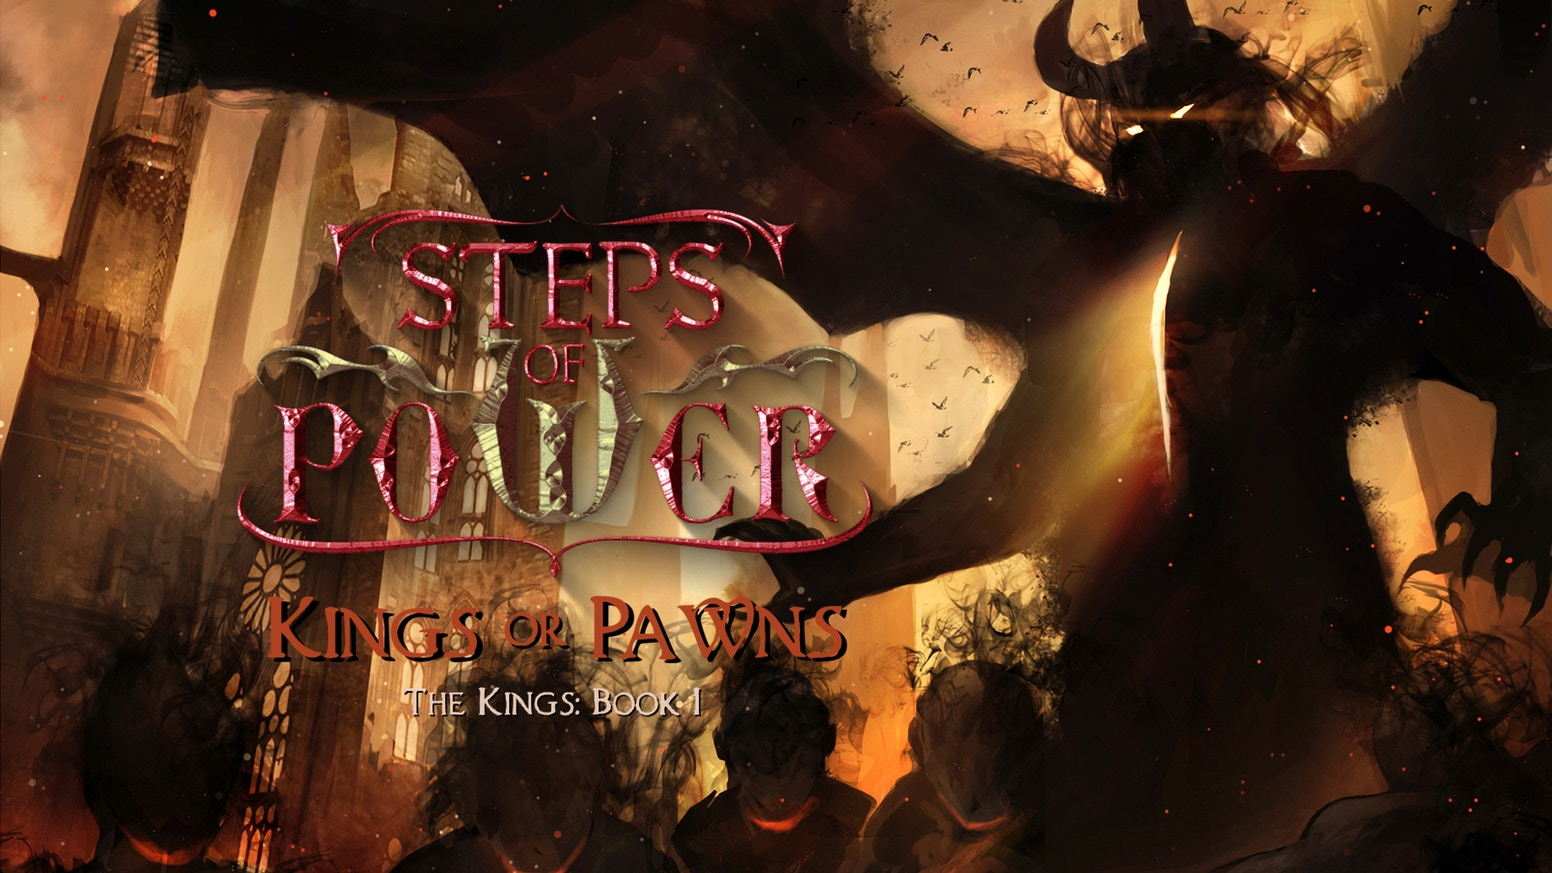 Kings or Pawns: Steps of Power, Book I - Audiobook by Jessica